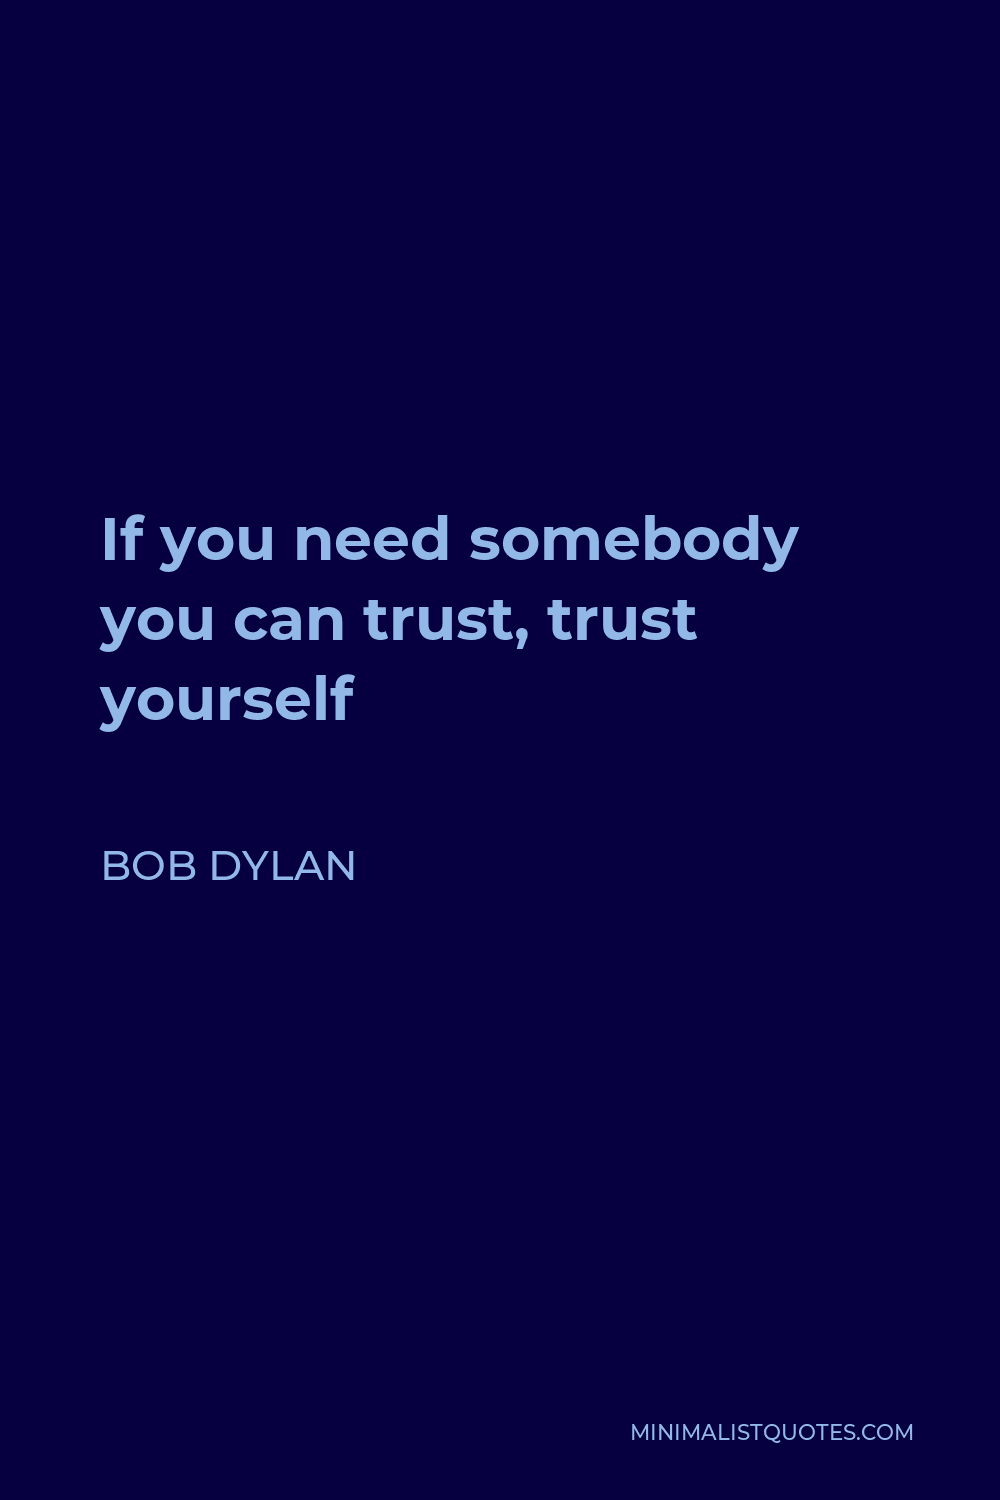 Bob Dylan Quote - If you need somebody you can trust, trust yourself